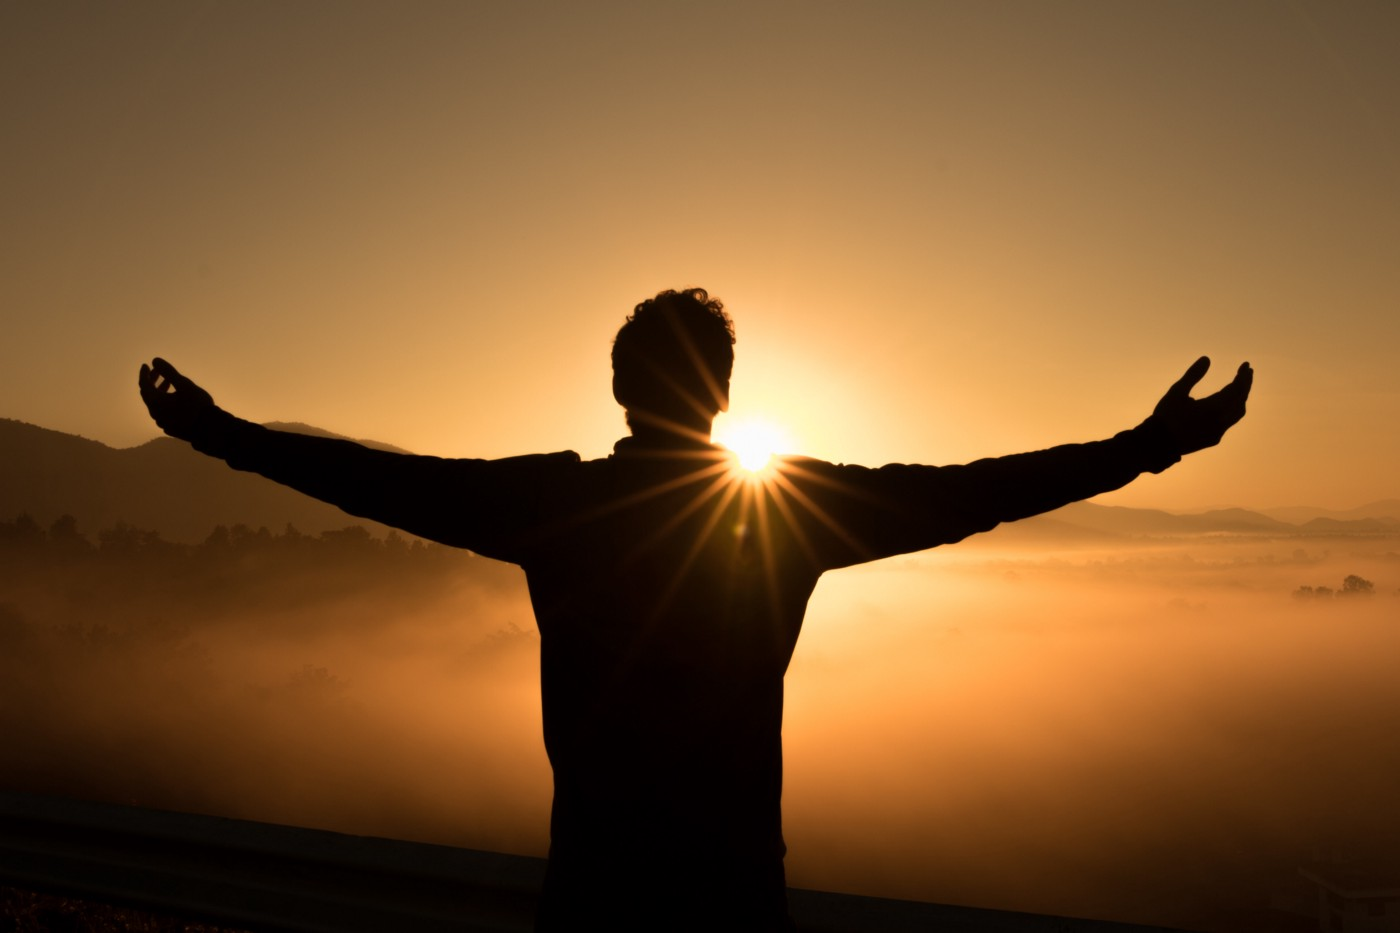 A silhouette of a man with outstretched arms looking at sunset.